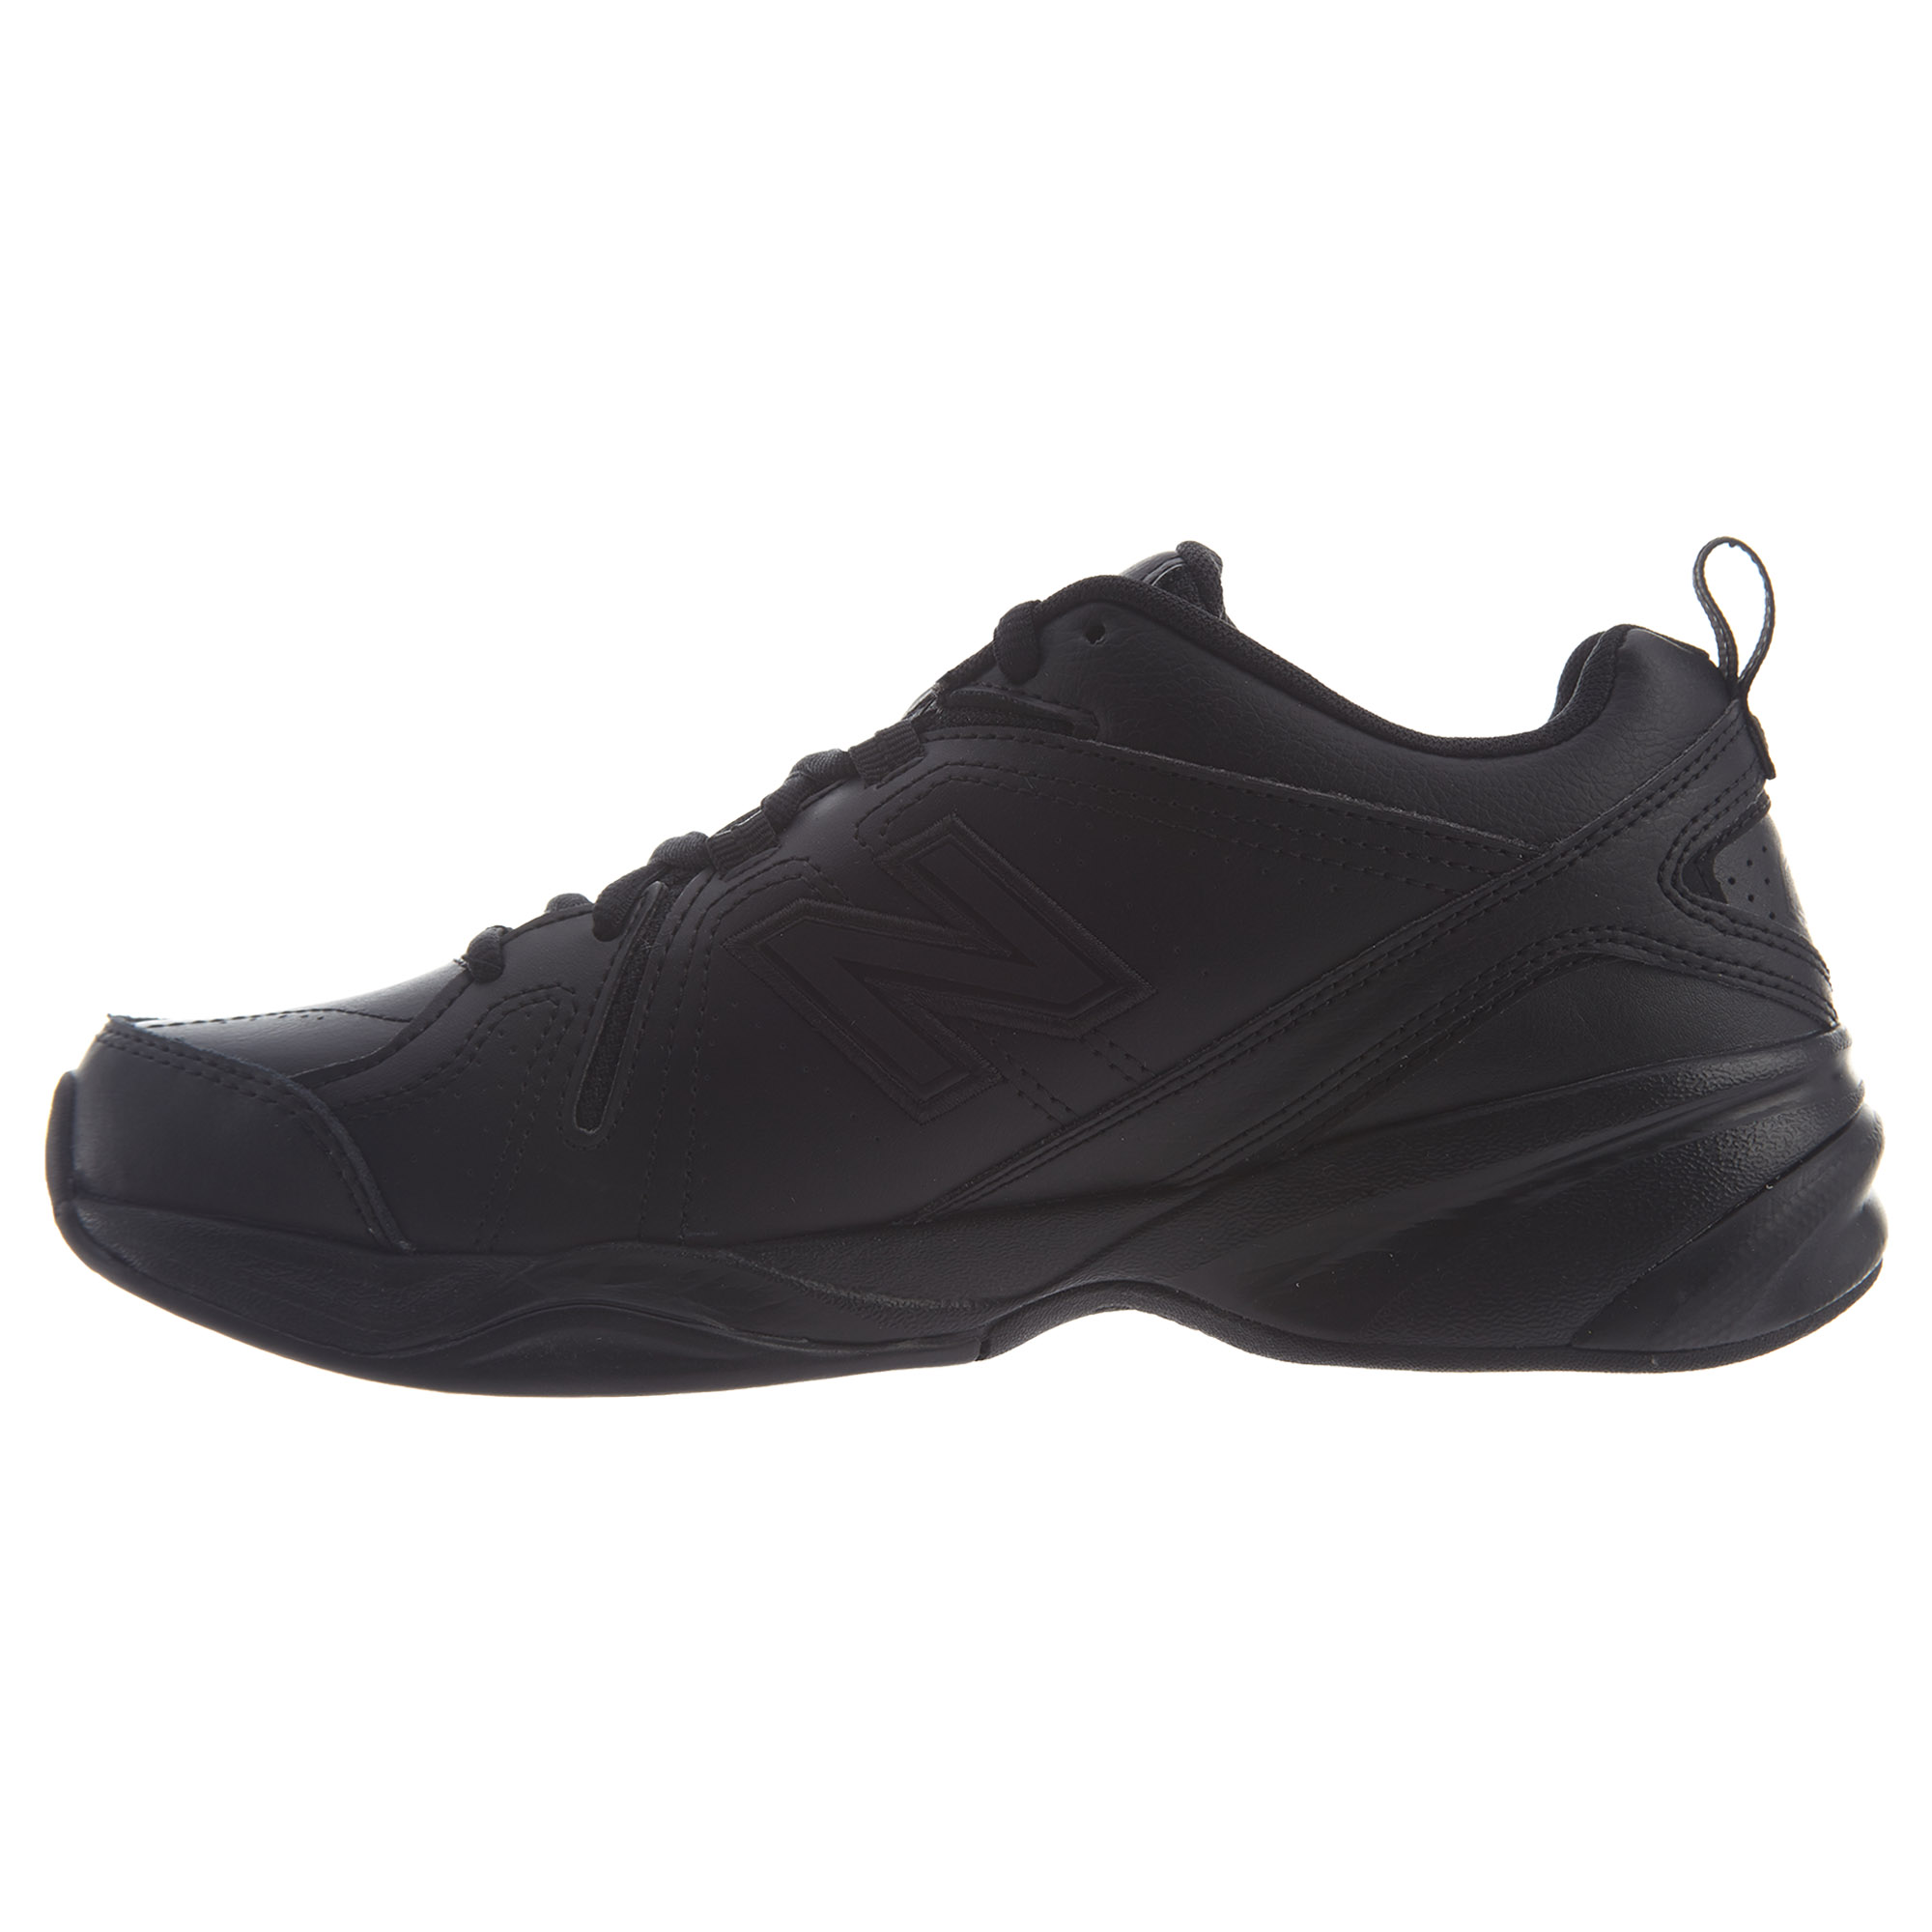 c25572464 Details about New Balance Womens 608 Comfort Pack Running Shoes Black  WX608-V4B